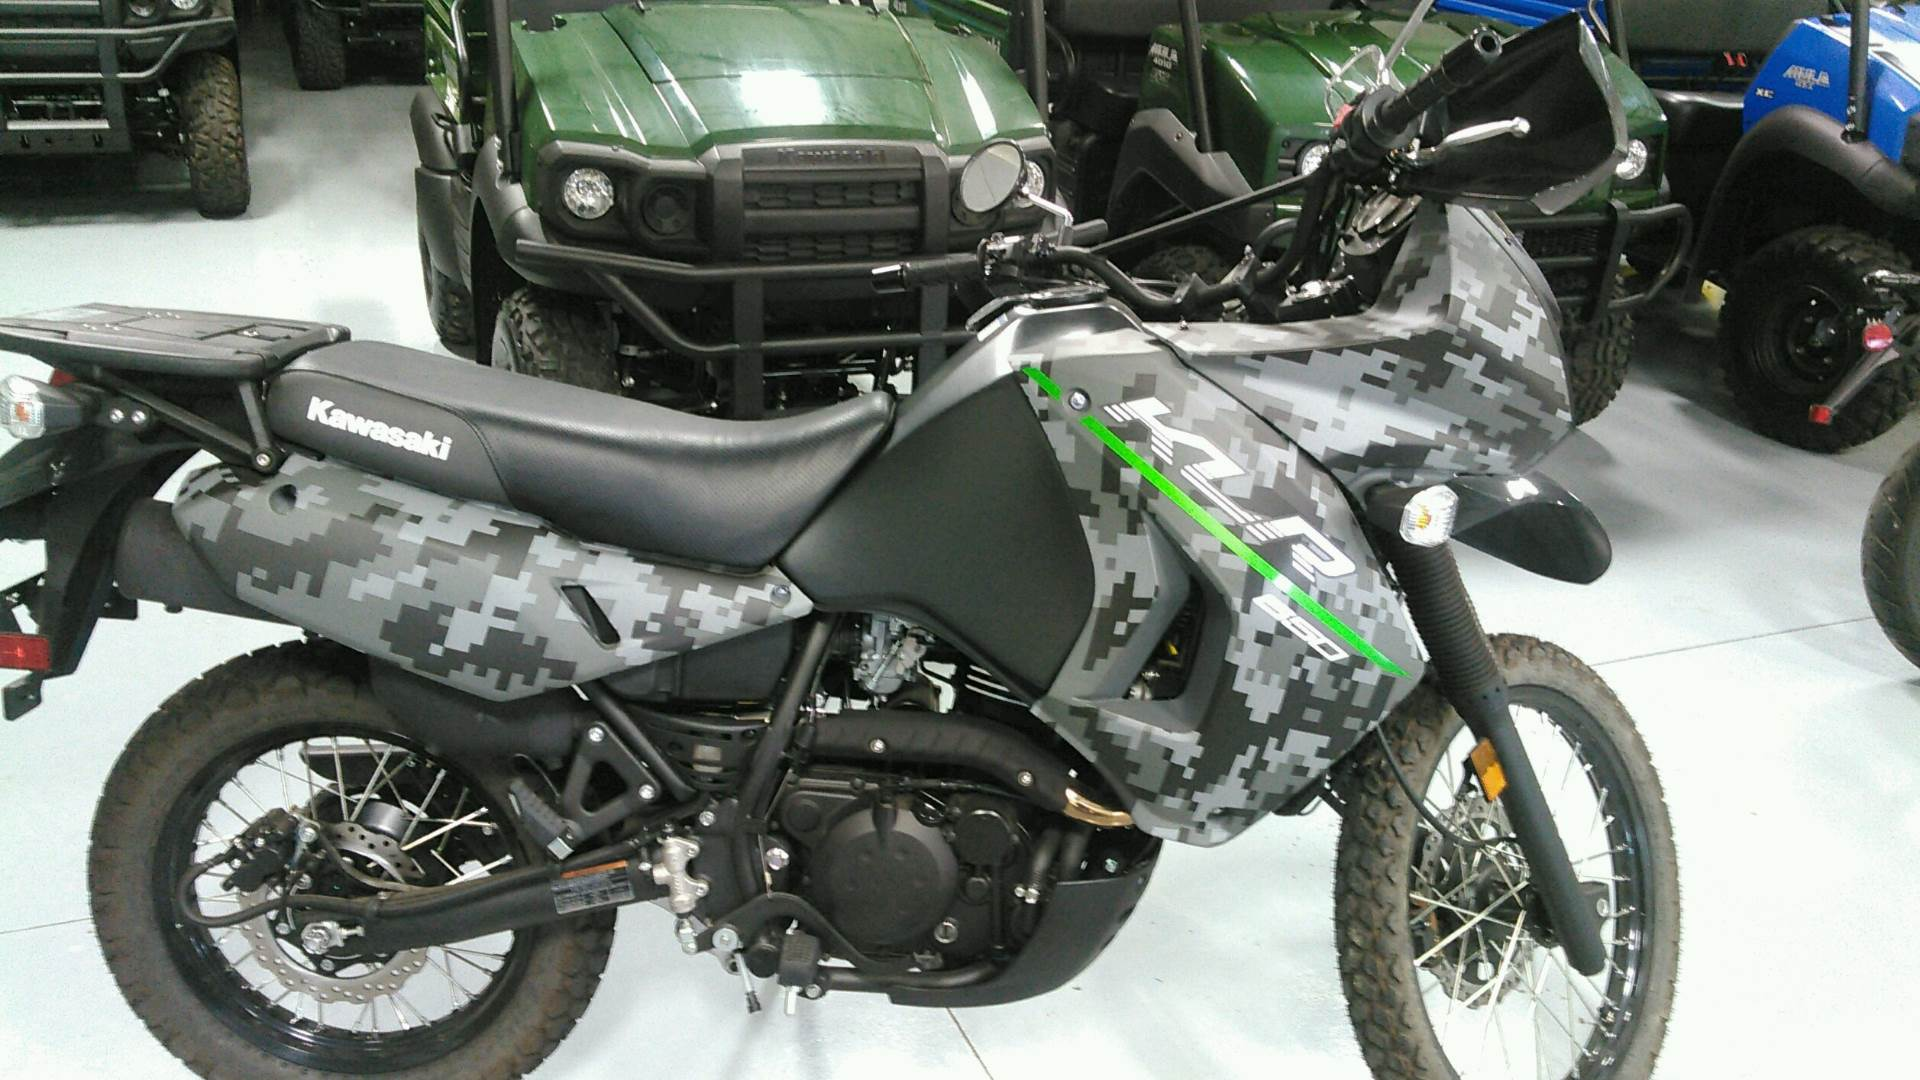 2017 Kawasaki KLR650 in Harrisburg, Illinois